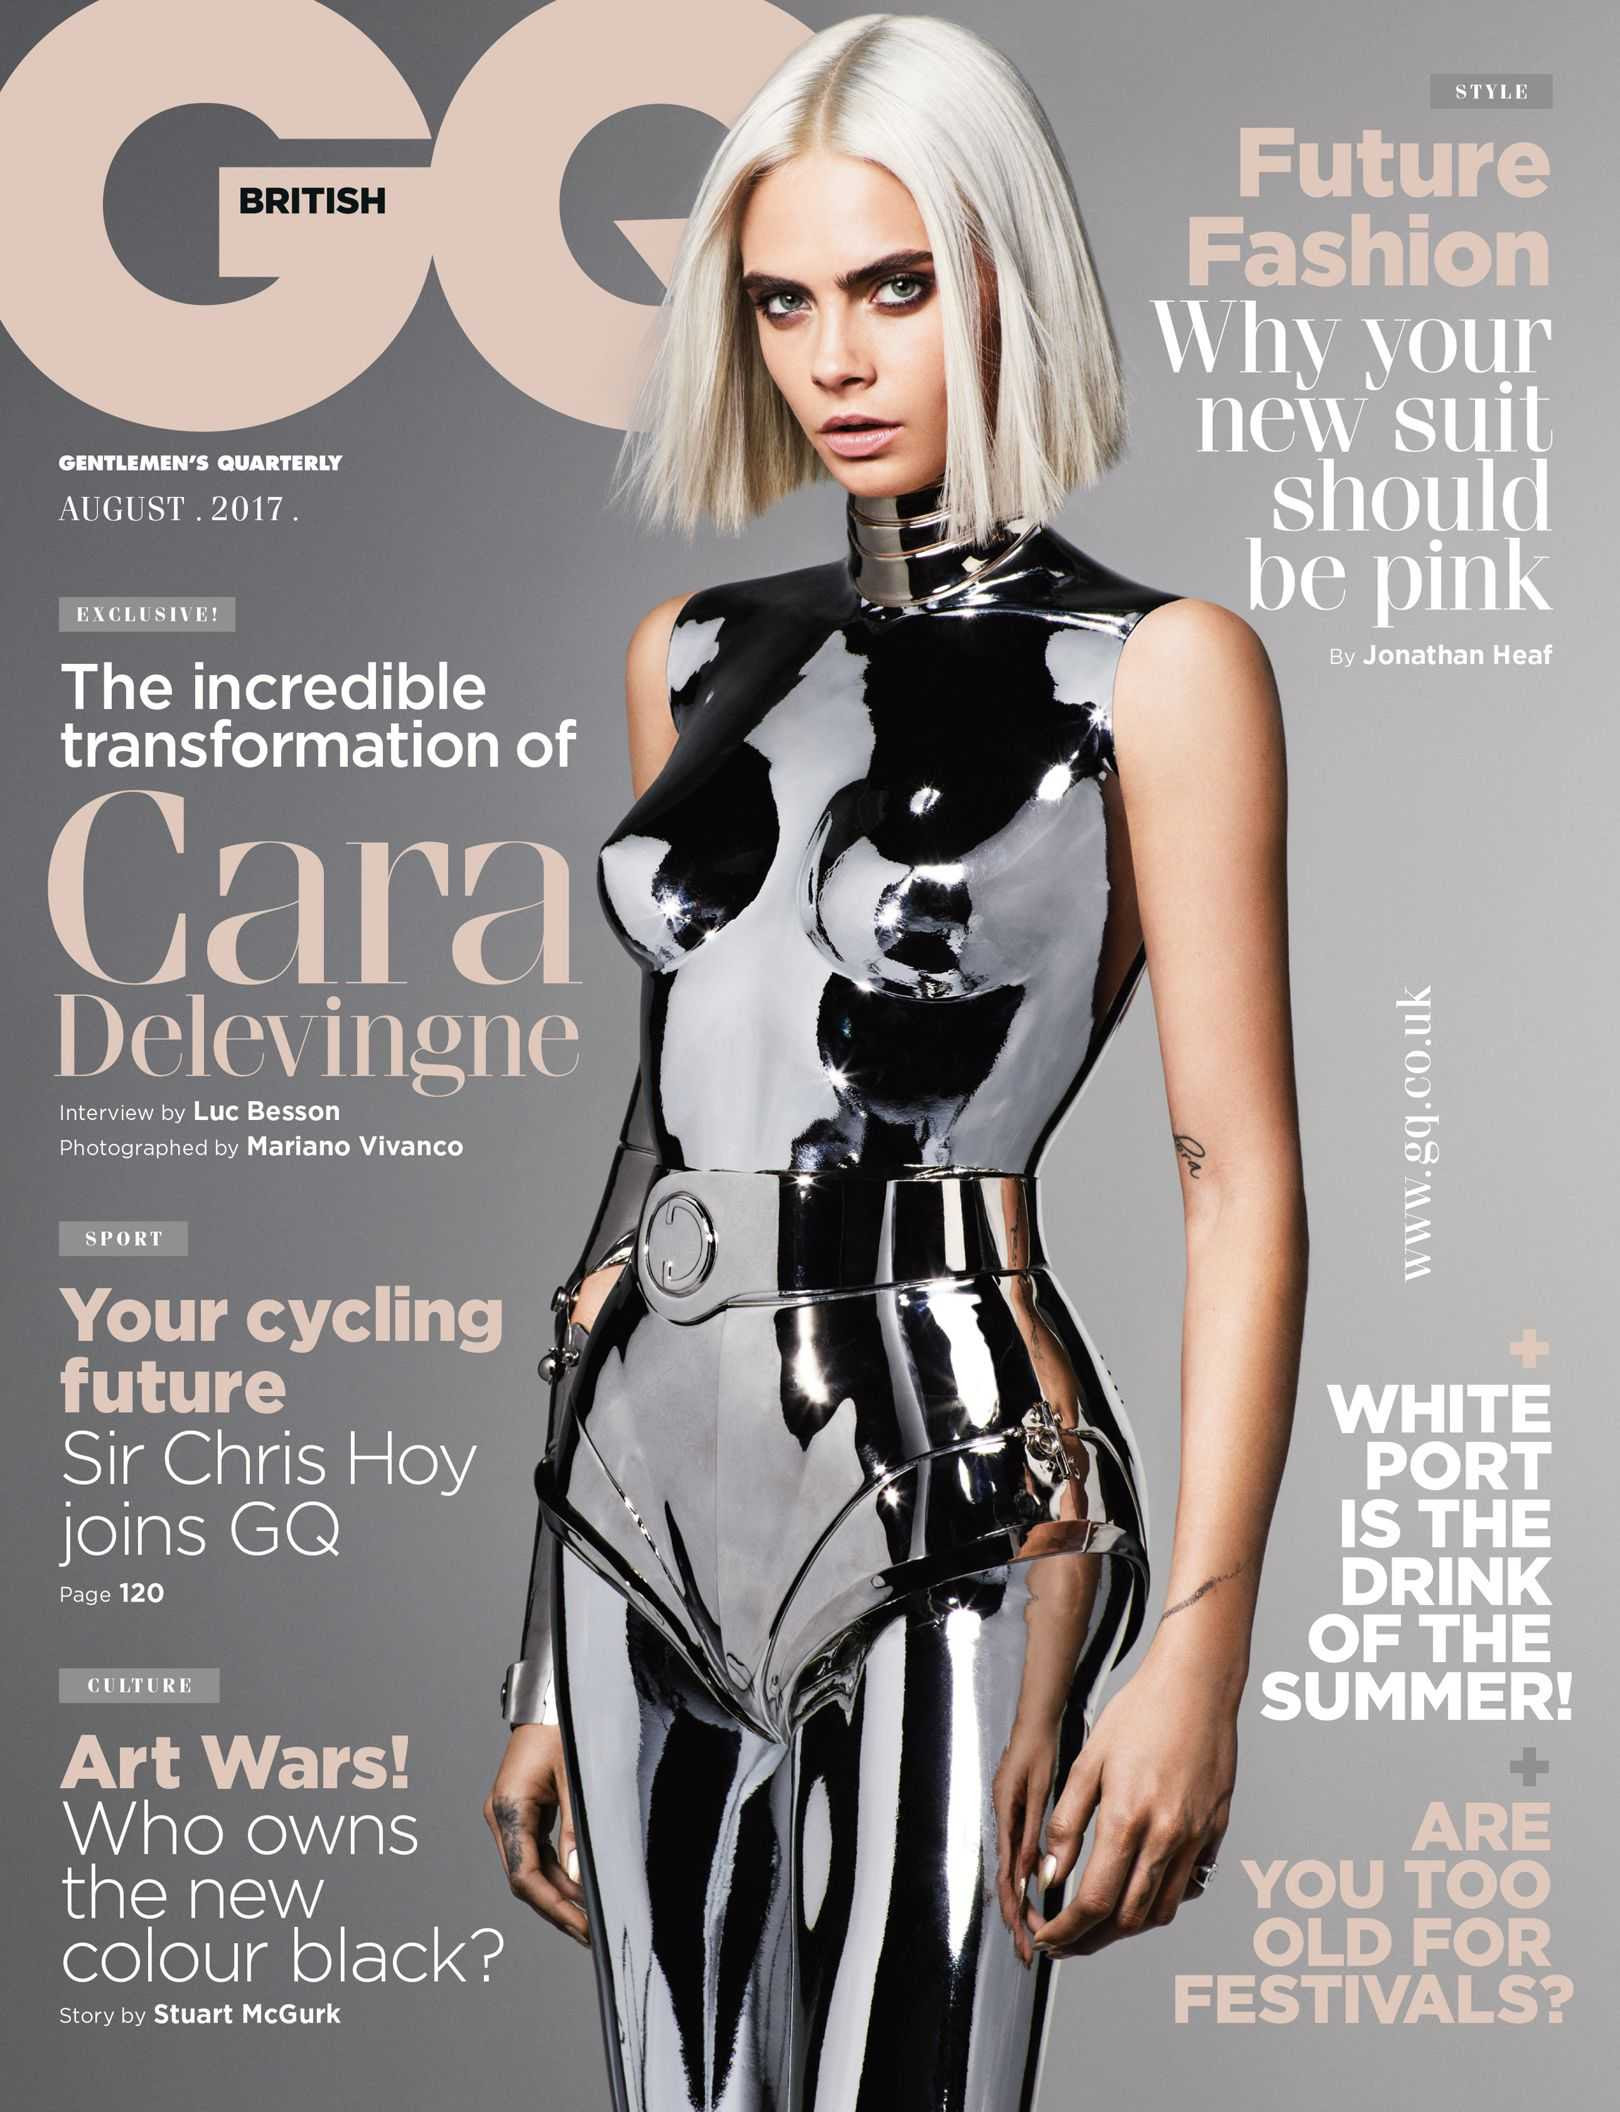 Cara Delevingne Photoshoot by Mariano Vivanco for British GQ - August 2017